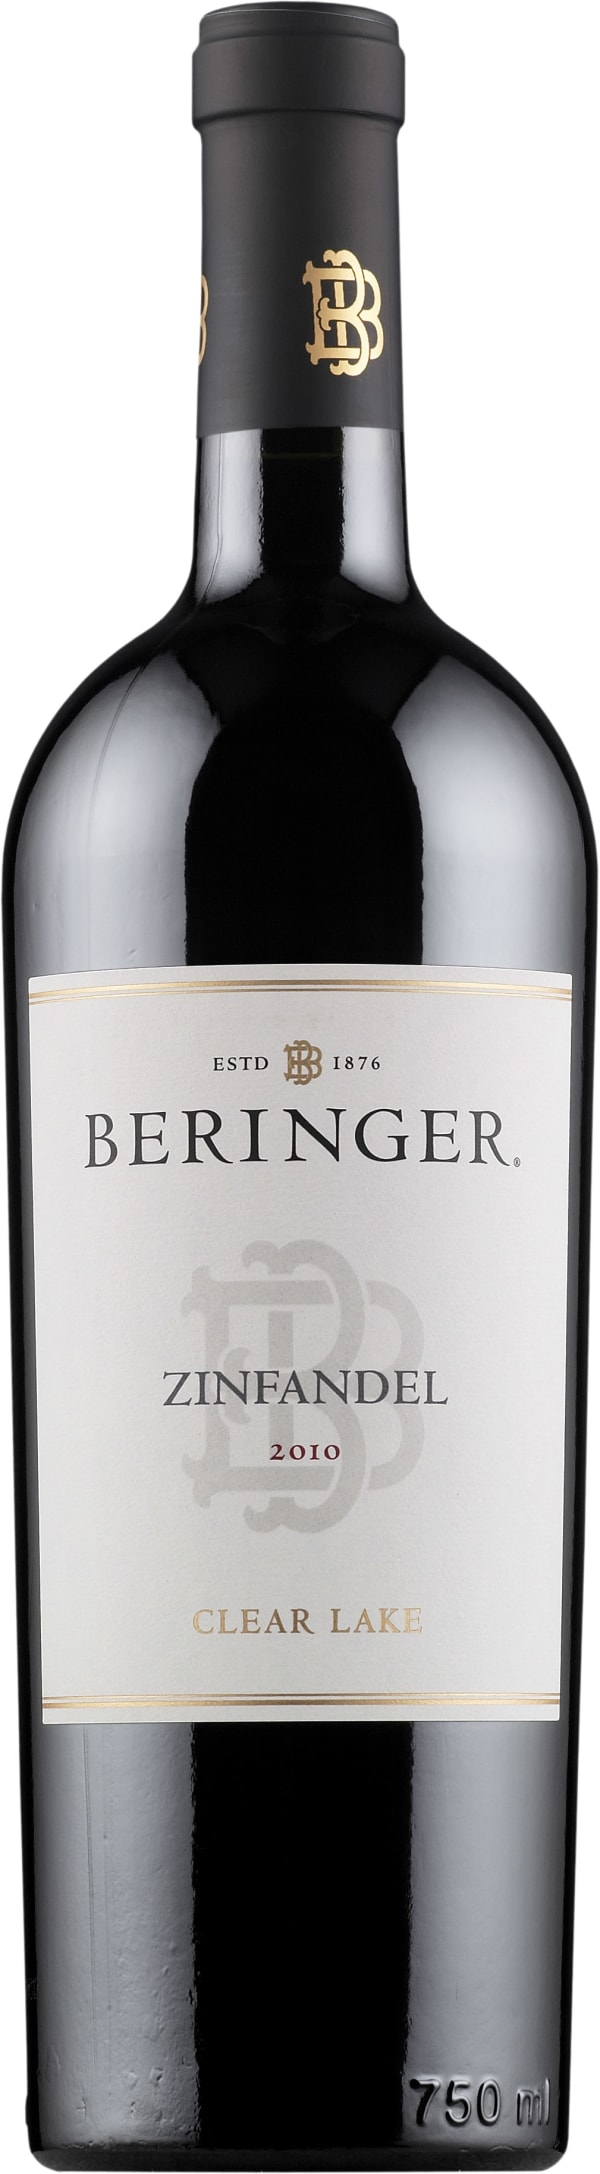 Beringer Clear Lake Zinfandel 2012